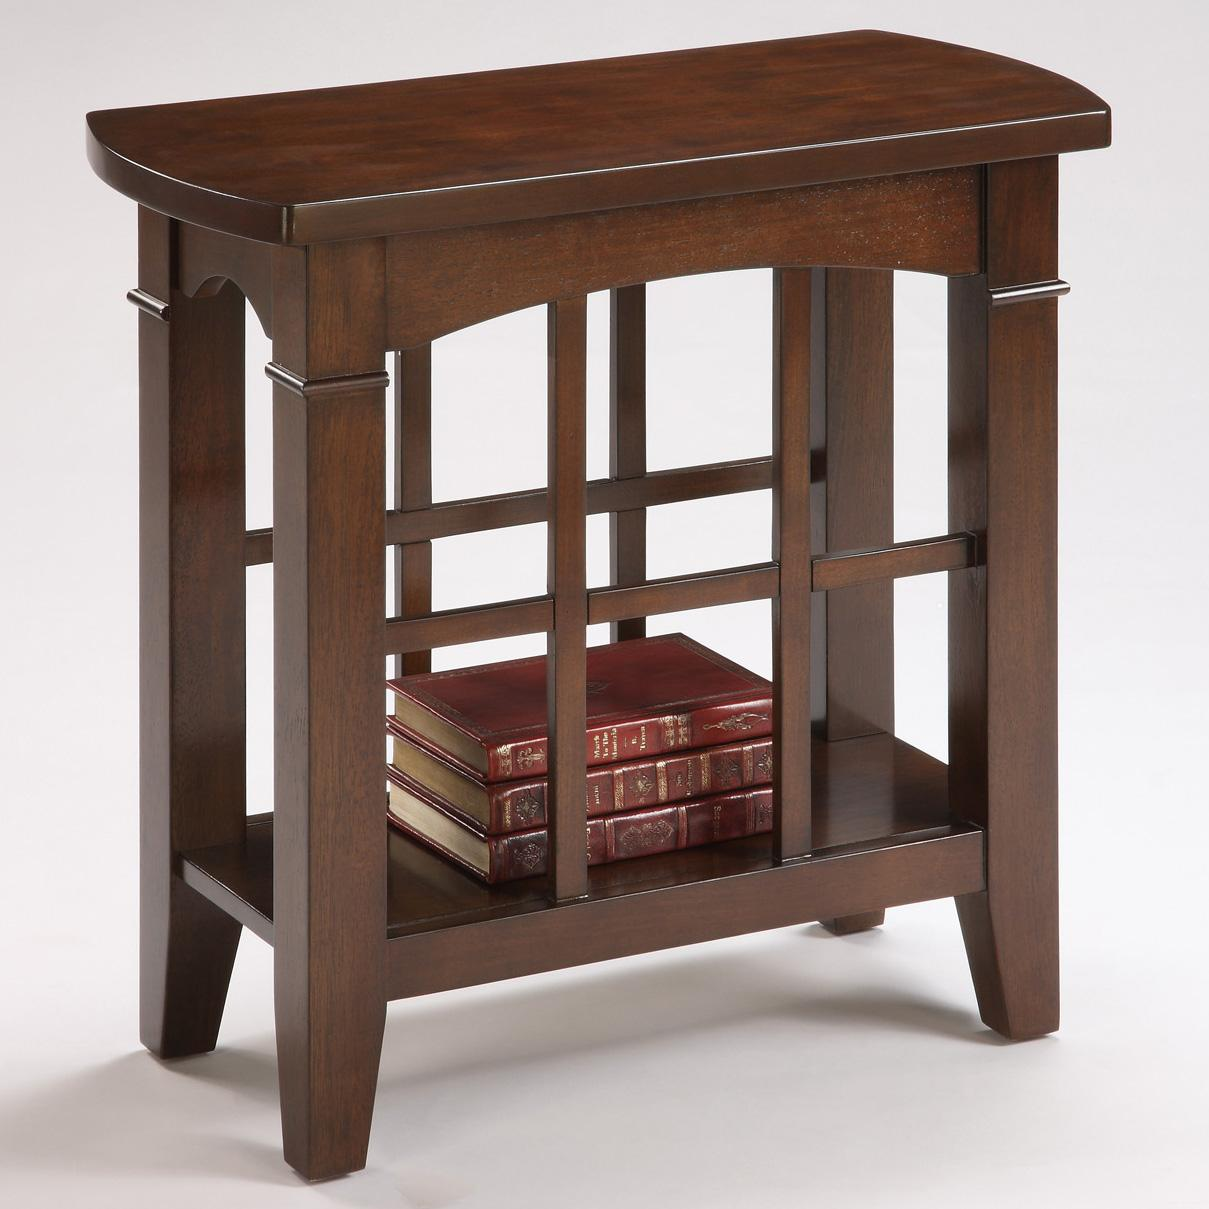 Crown Mark Camino Chairside Table - Item Number: 7155